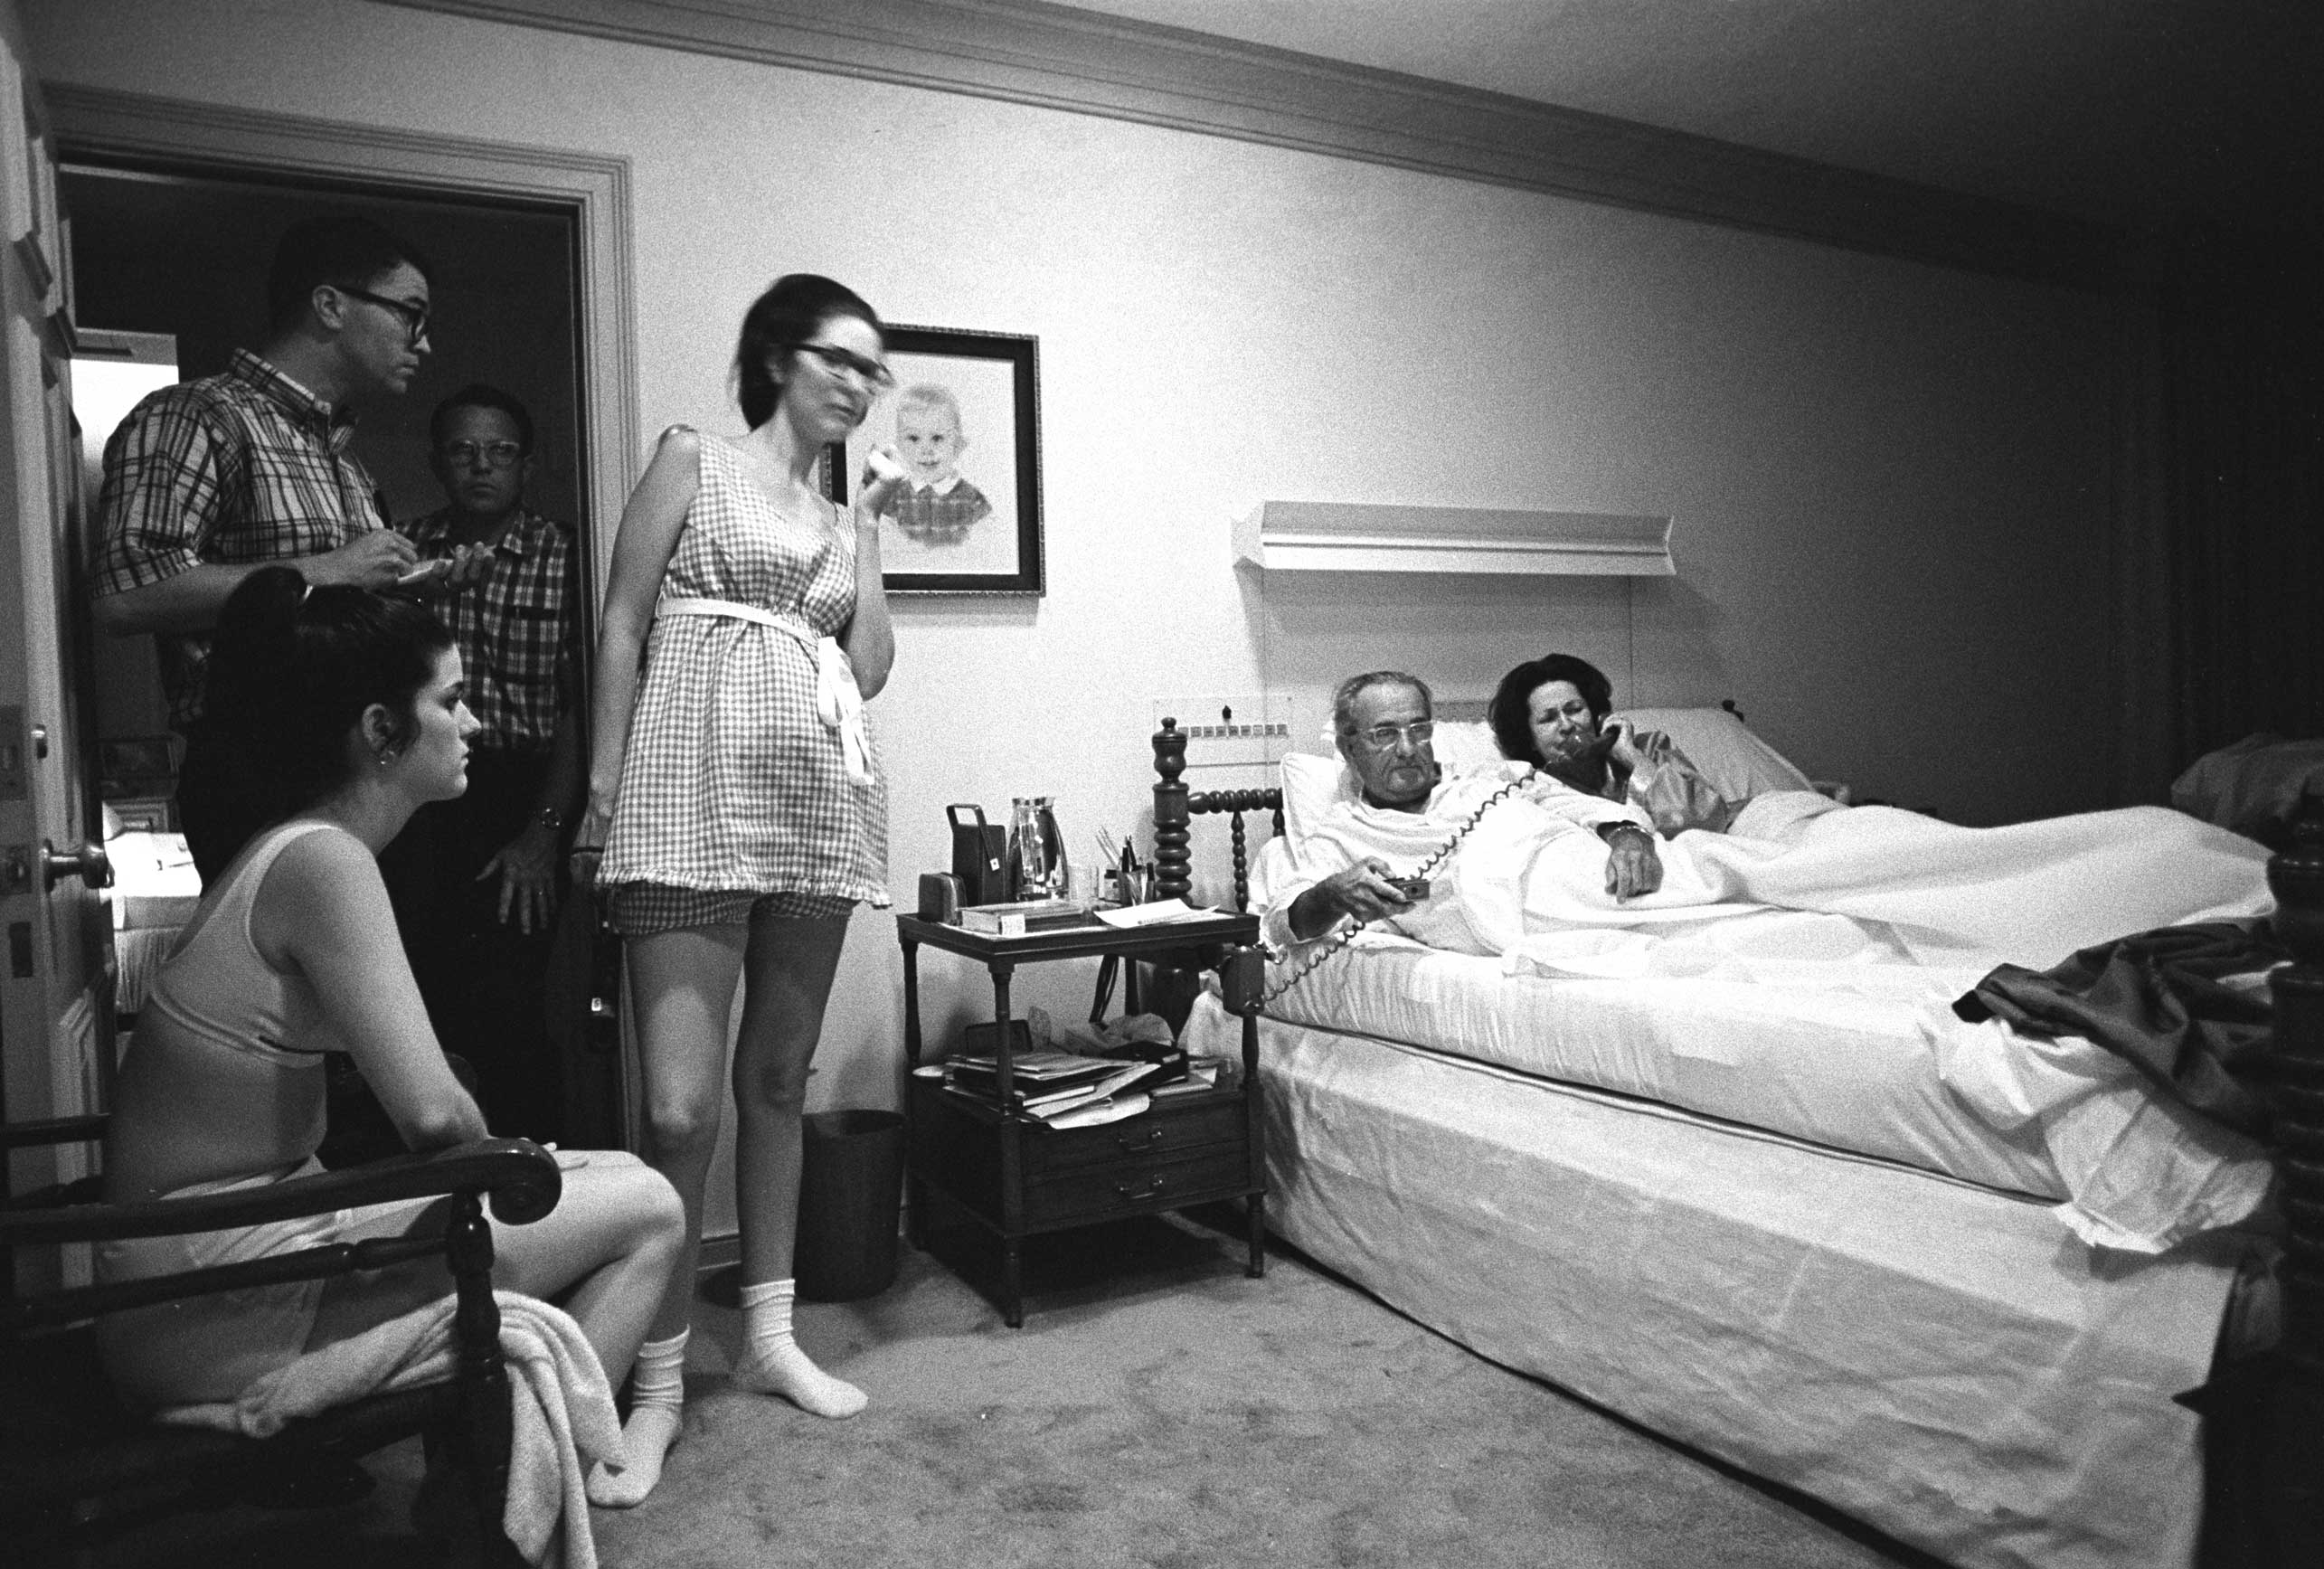 President Lyndon B. Johnson and family watch the Democratic National Convention on television from the president's bedroom on Aug. 28, 1968.